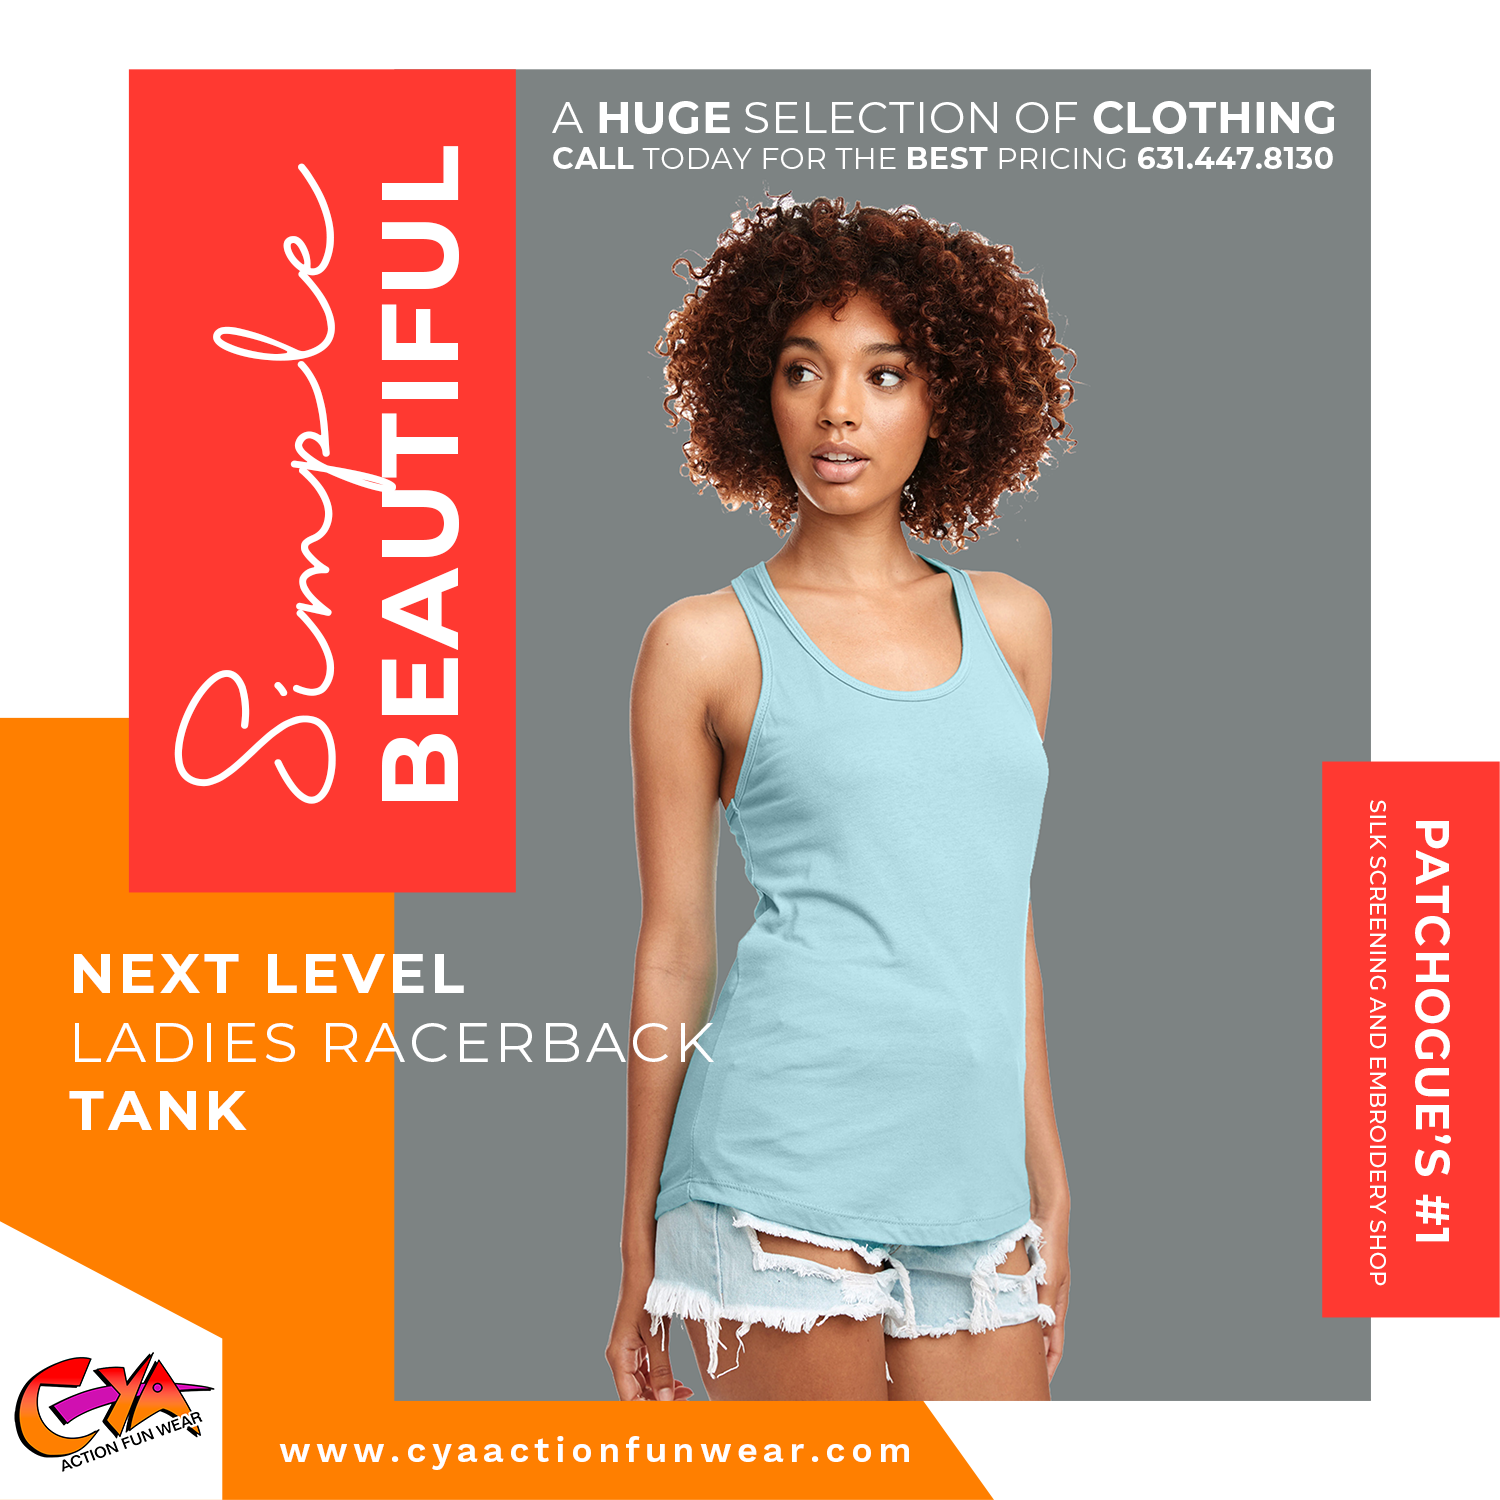 Best Lady Tank Top Prices Patchogue New York